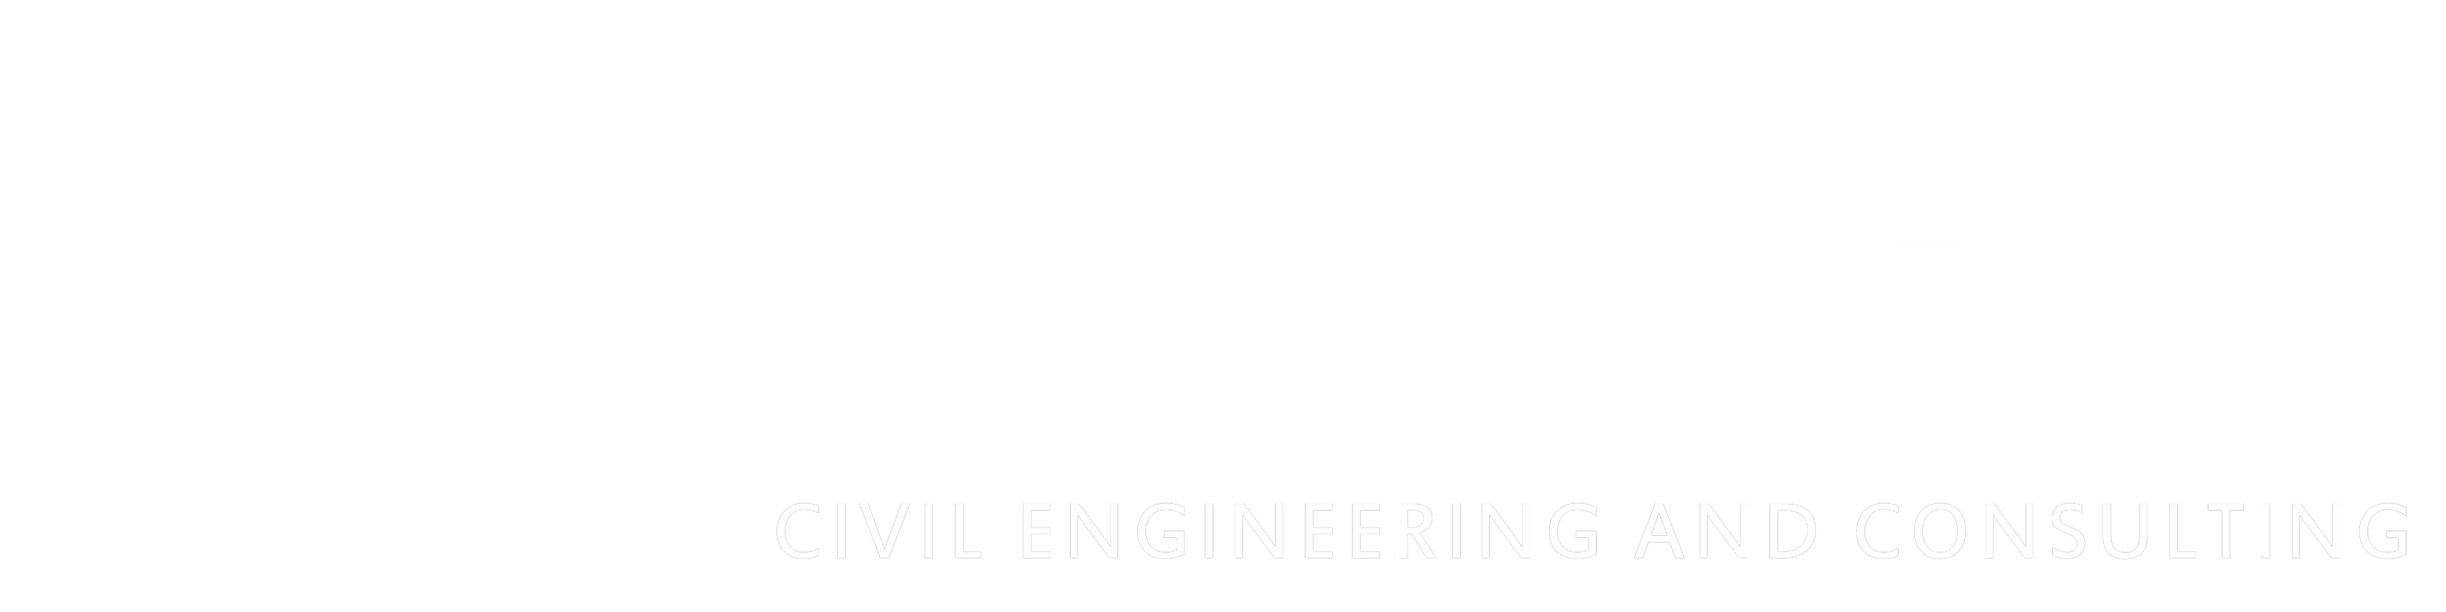 Venturi Engineers